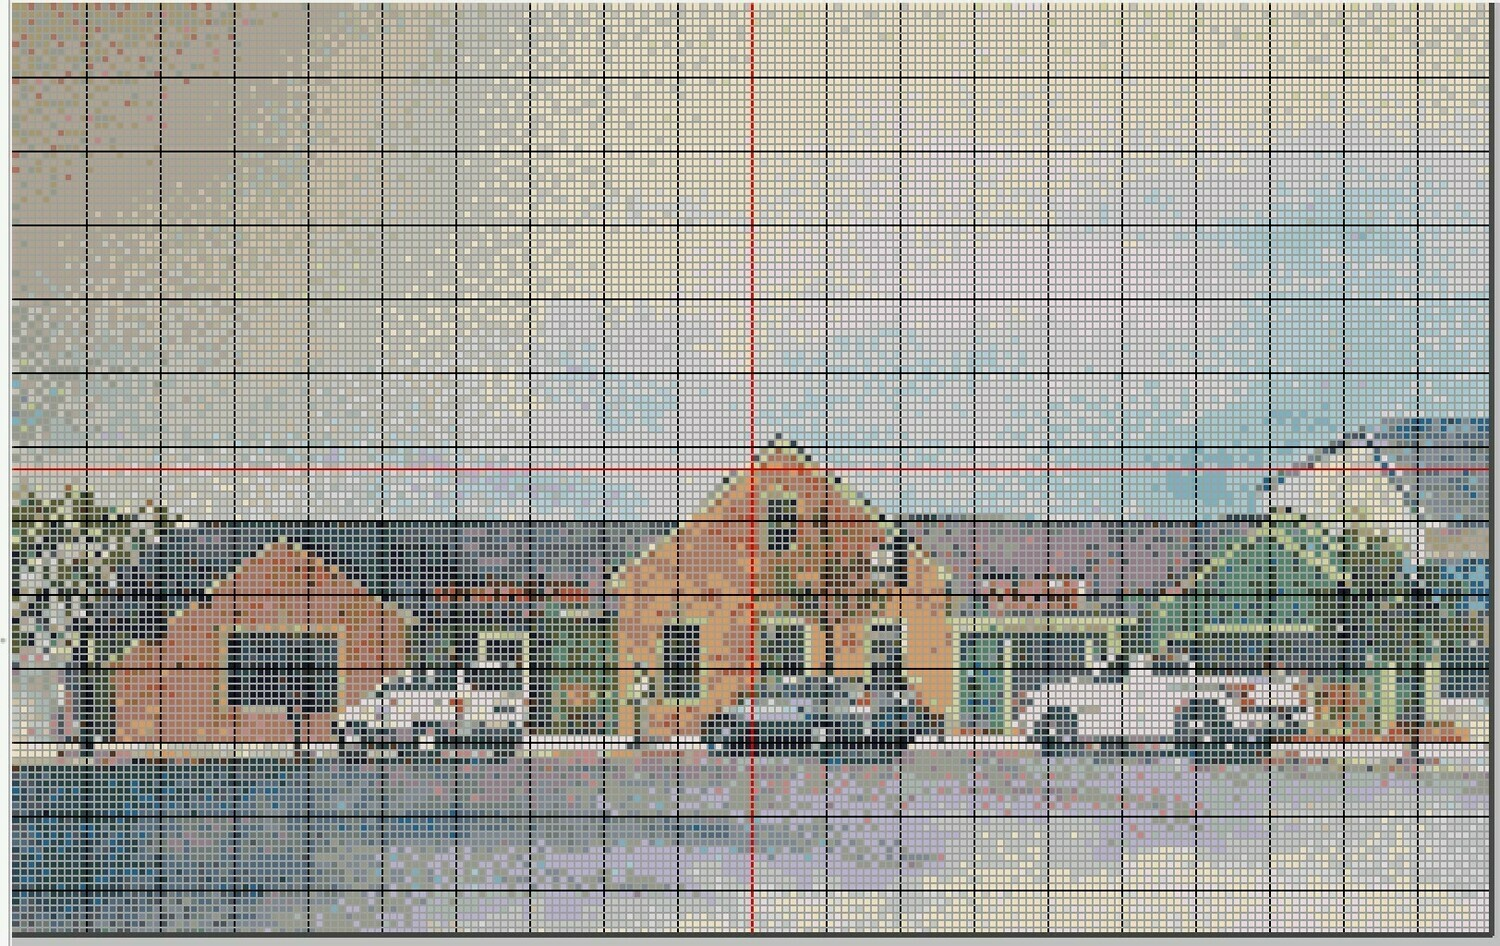 Fun Stone Harbor NJ Cross Stitch - Fred's Tavern - Pattern Only - Instant Digital Download